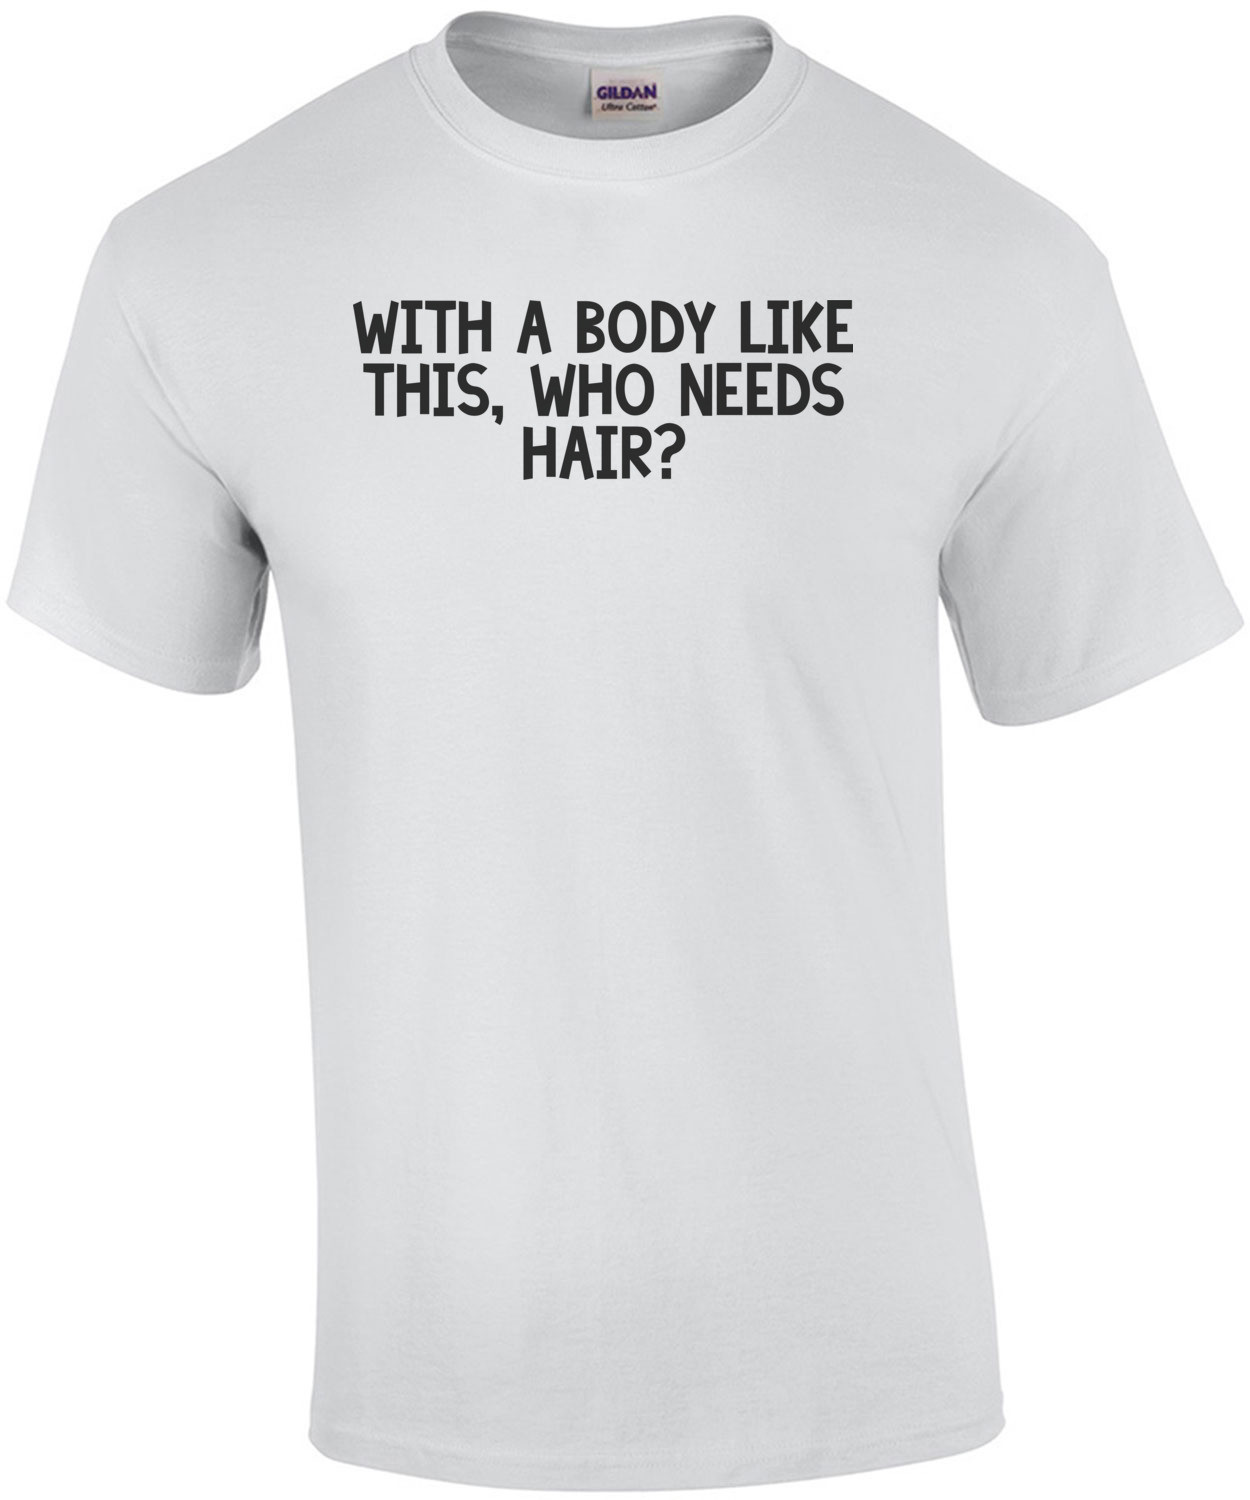 With a body like this, who needs hair 2 Shirt